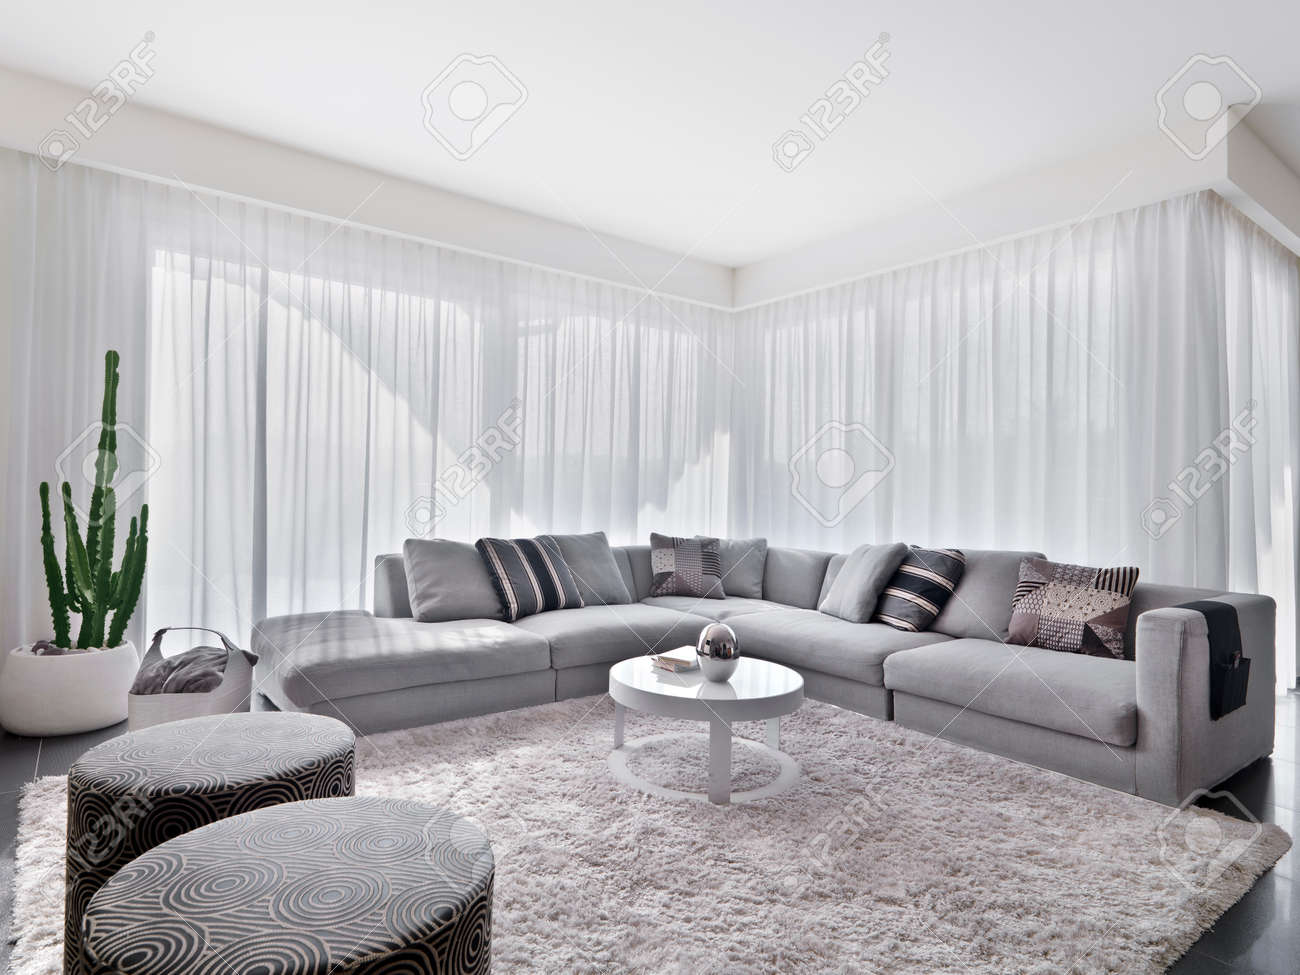 Modern Sofa With Carpet In The Living Room Stock Photo, Picture ...